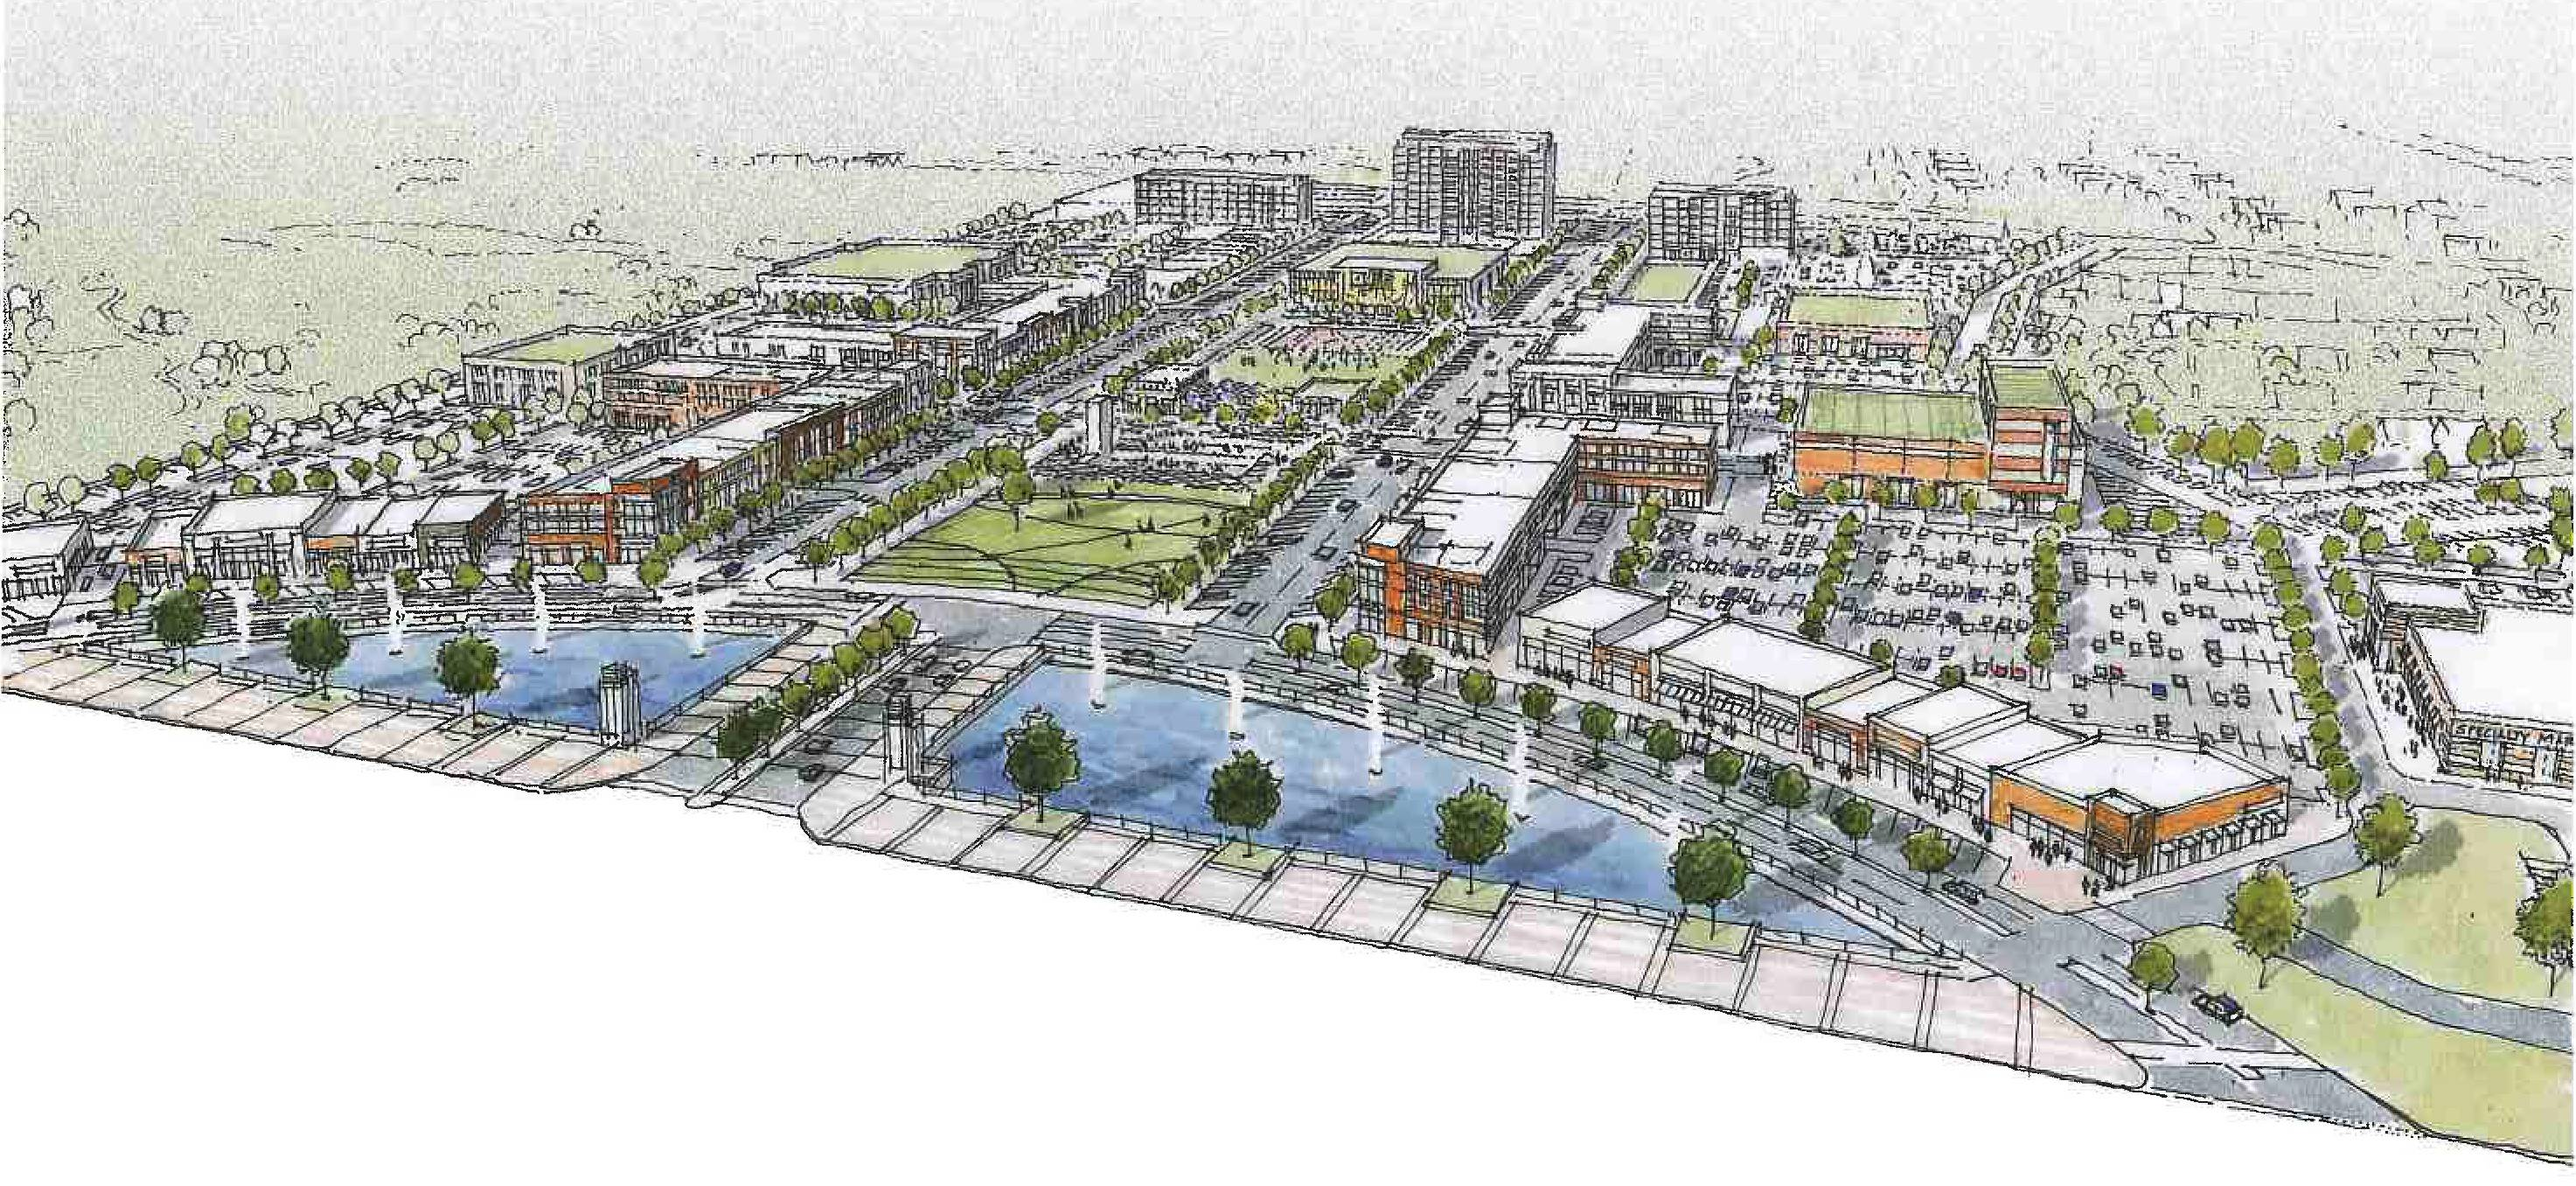 Study of 'downtown' Buffalo Grove almost complete